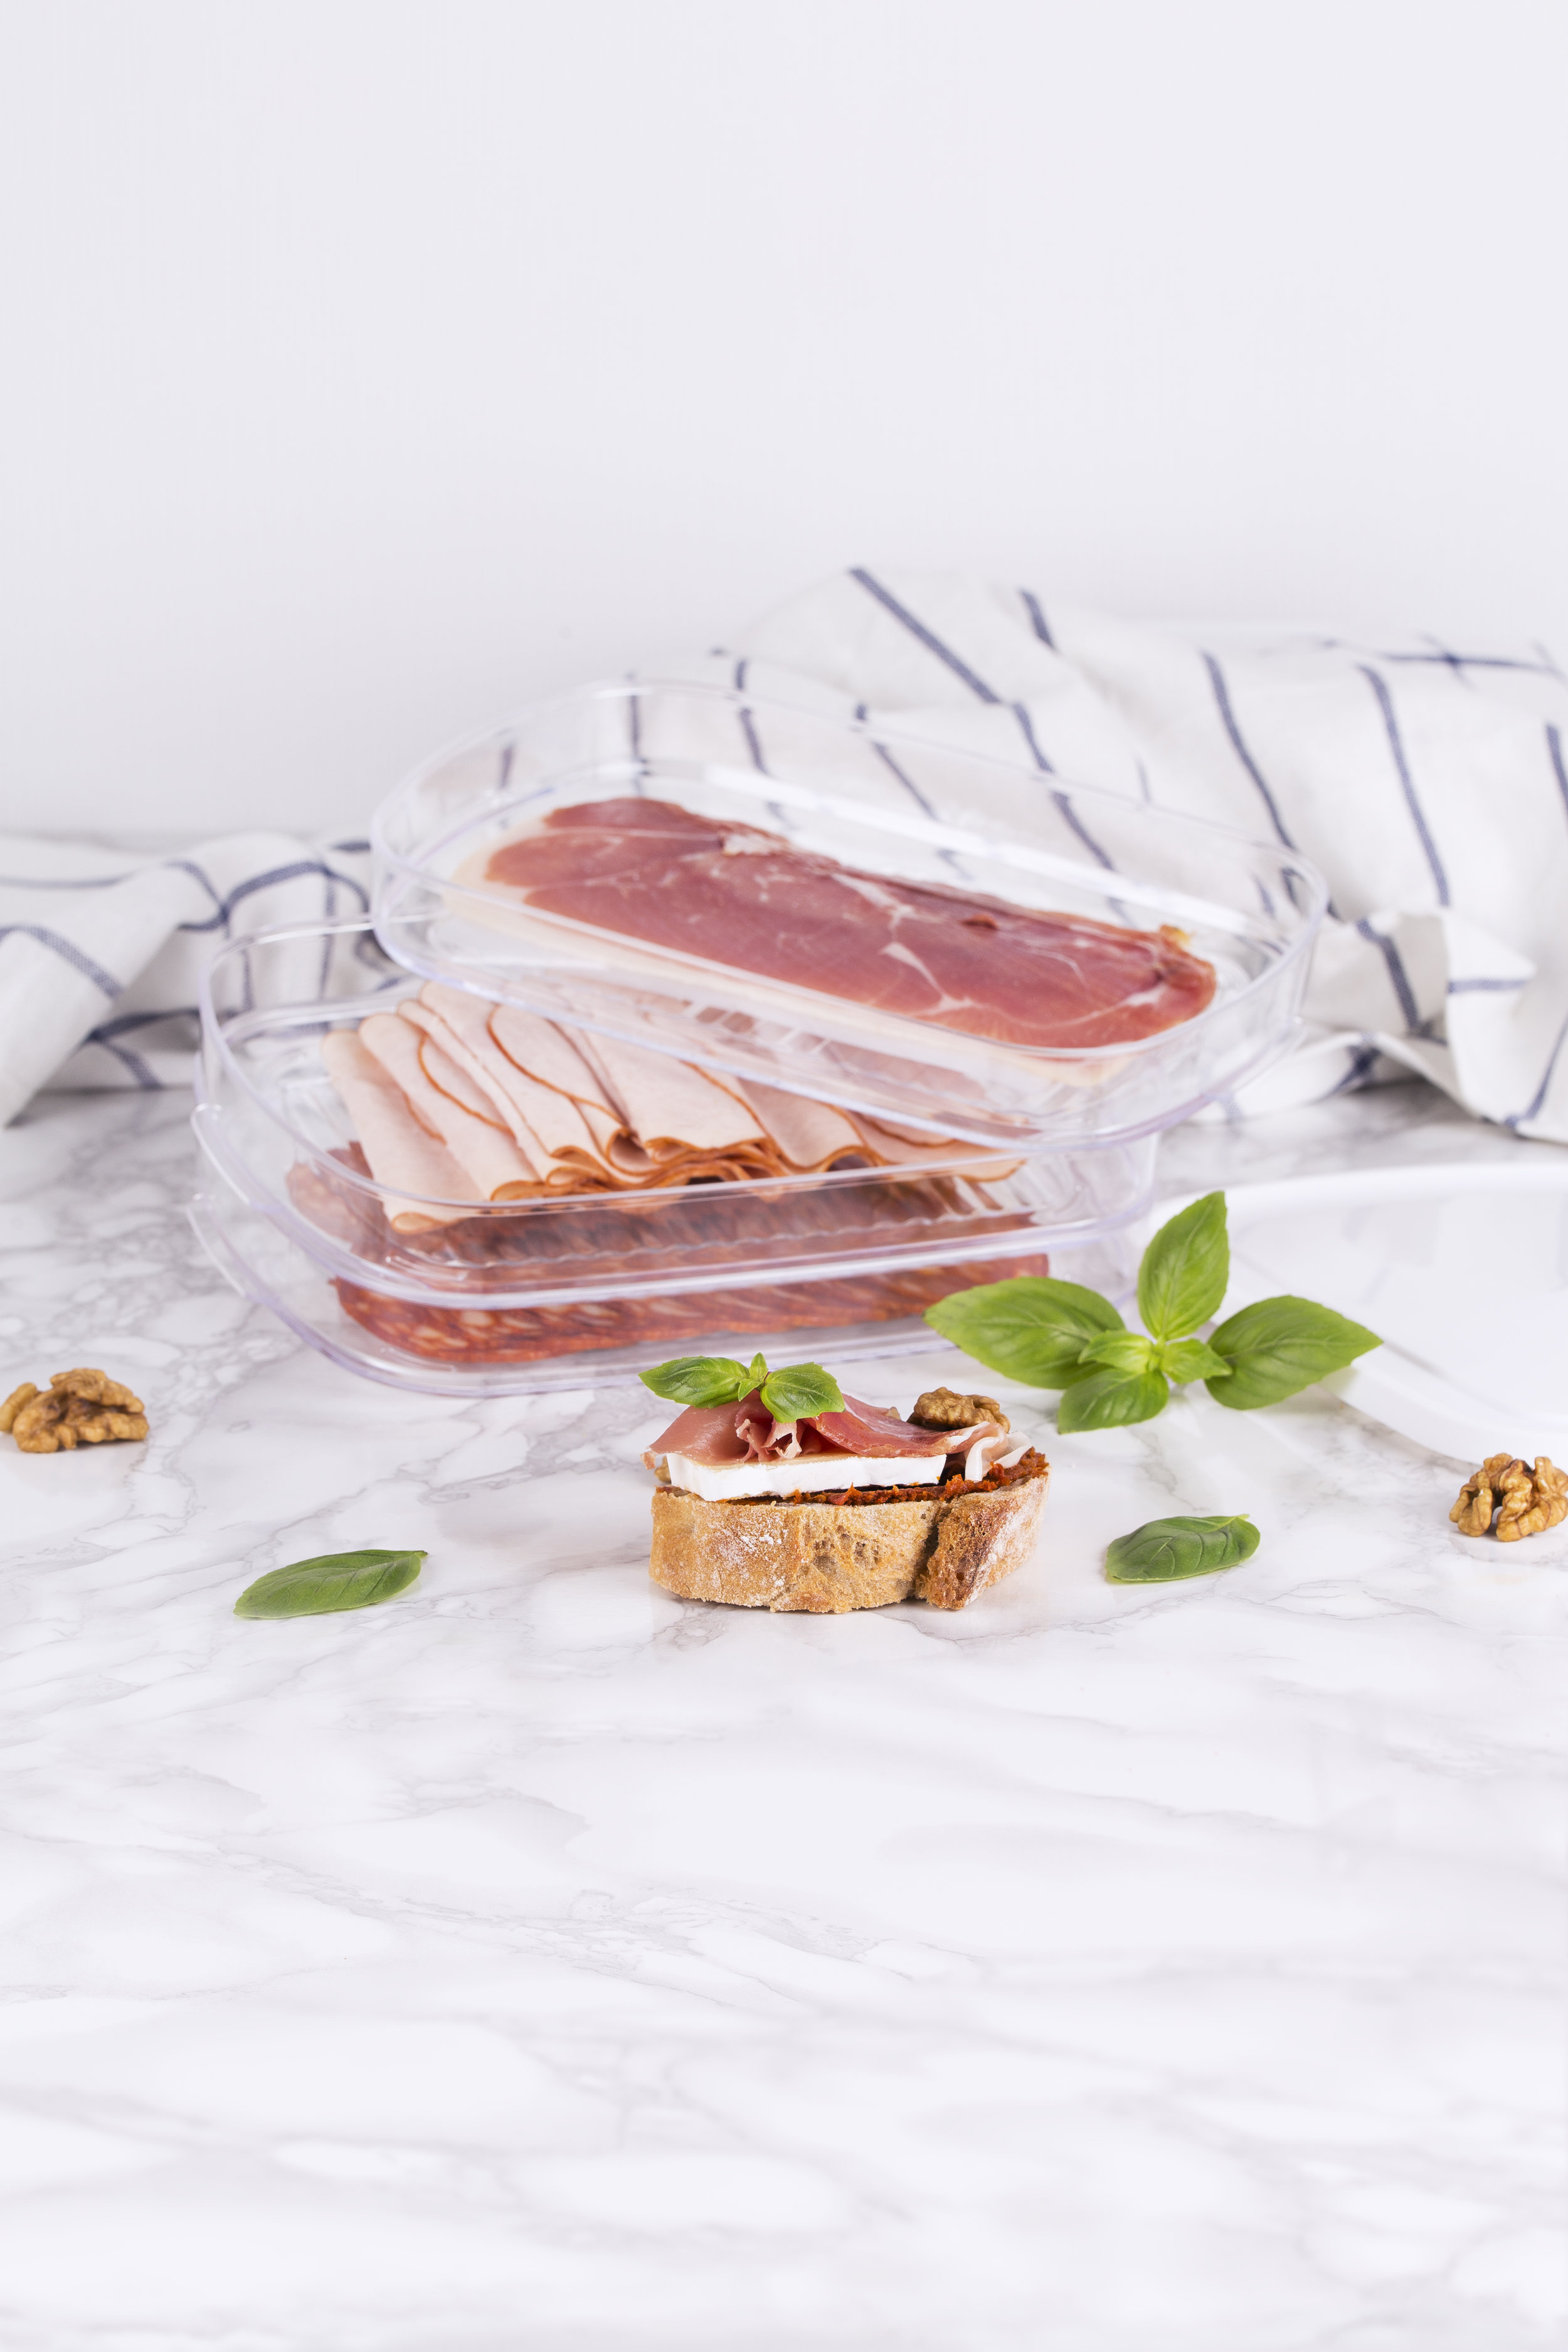 Amuse Tip - .... TIP 1 Roasted and cooked meats are not stored in the same manner. So be sure to keep them separate at all times: place them in different compartments. .. CONSEIL 1 Vous ne conservez pas de la même manière des charcuteries/viandes cuites ou grillées. Conservez-les donc toujours séparément : dans différents compartiments. .. TIP 1 Gebraden en gekookte vleeswaren bewaar je niet op dezelfde manier. Hou ze daarom altijd gescheiden: leg ze in verschillende compartimenten. .. TIPP 1 Gebratene und gekochte Fleischwaren bewahrt man unterschiedlich auf. Halten Sie sie darum immer getrennt: Legen Sie sie in verschiedene Fächer. ....